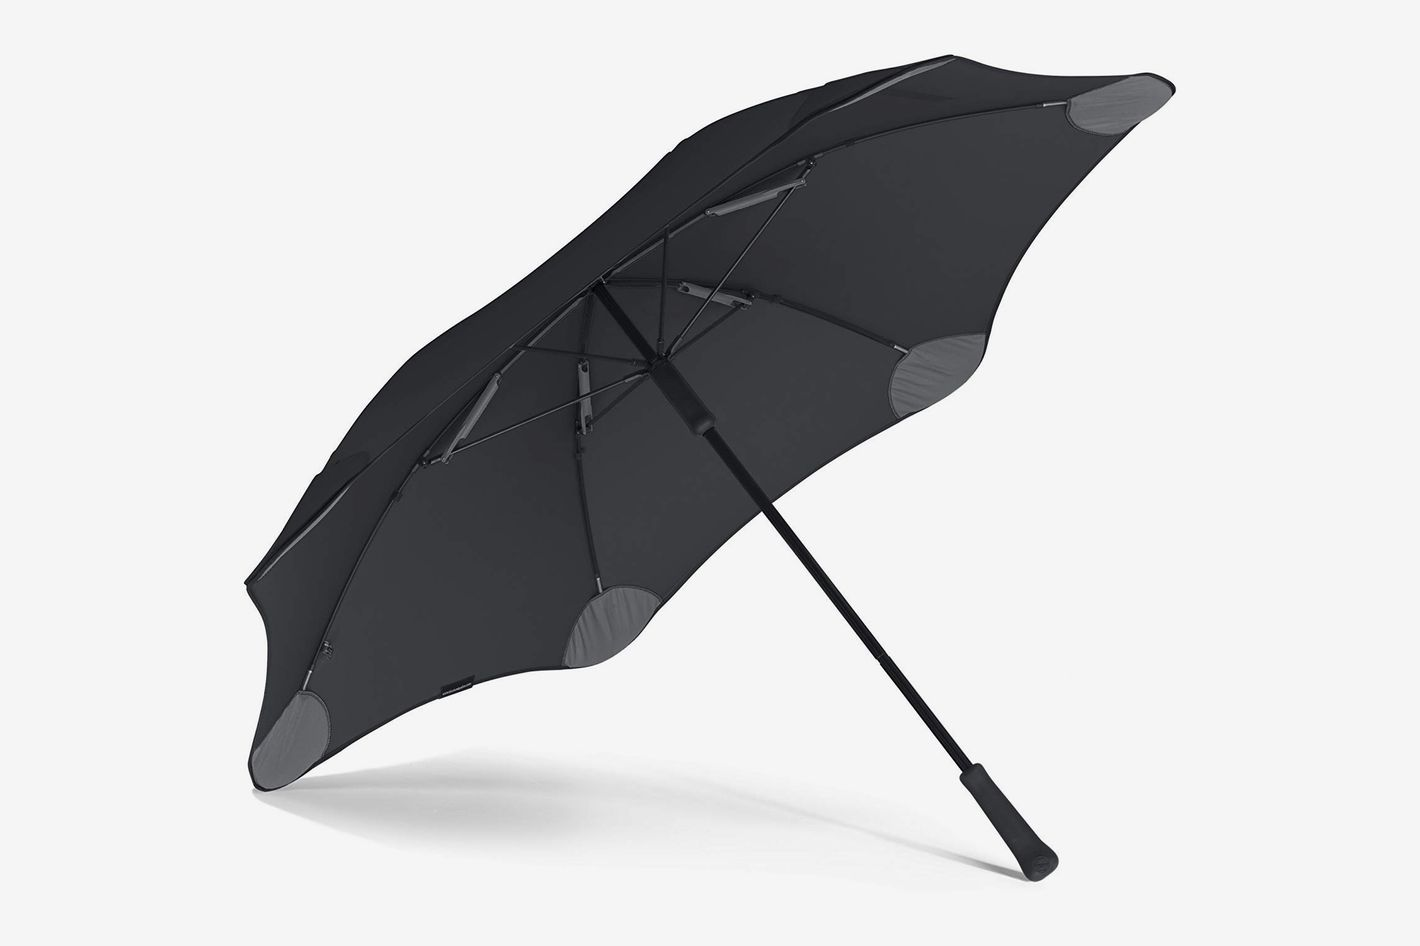 b05ea06e5f84 The 37 Best Umbrellas You Can Buy 2019